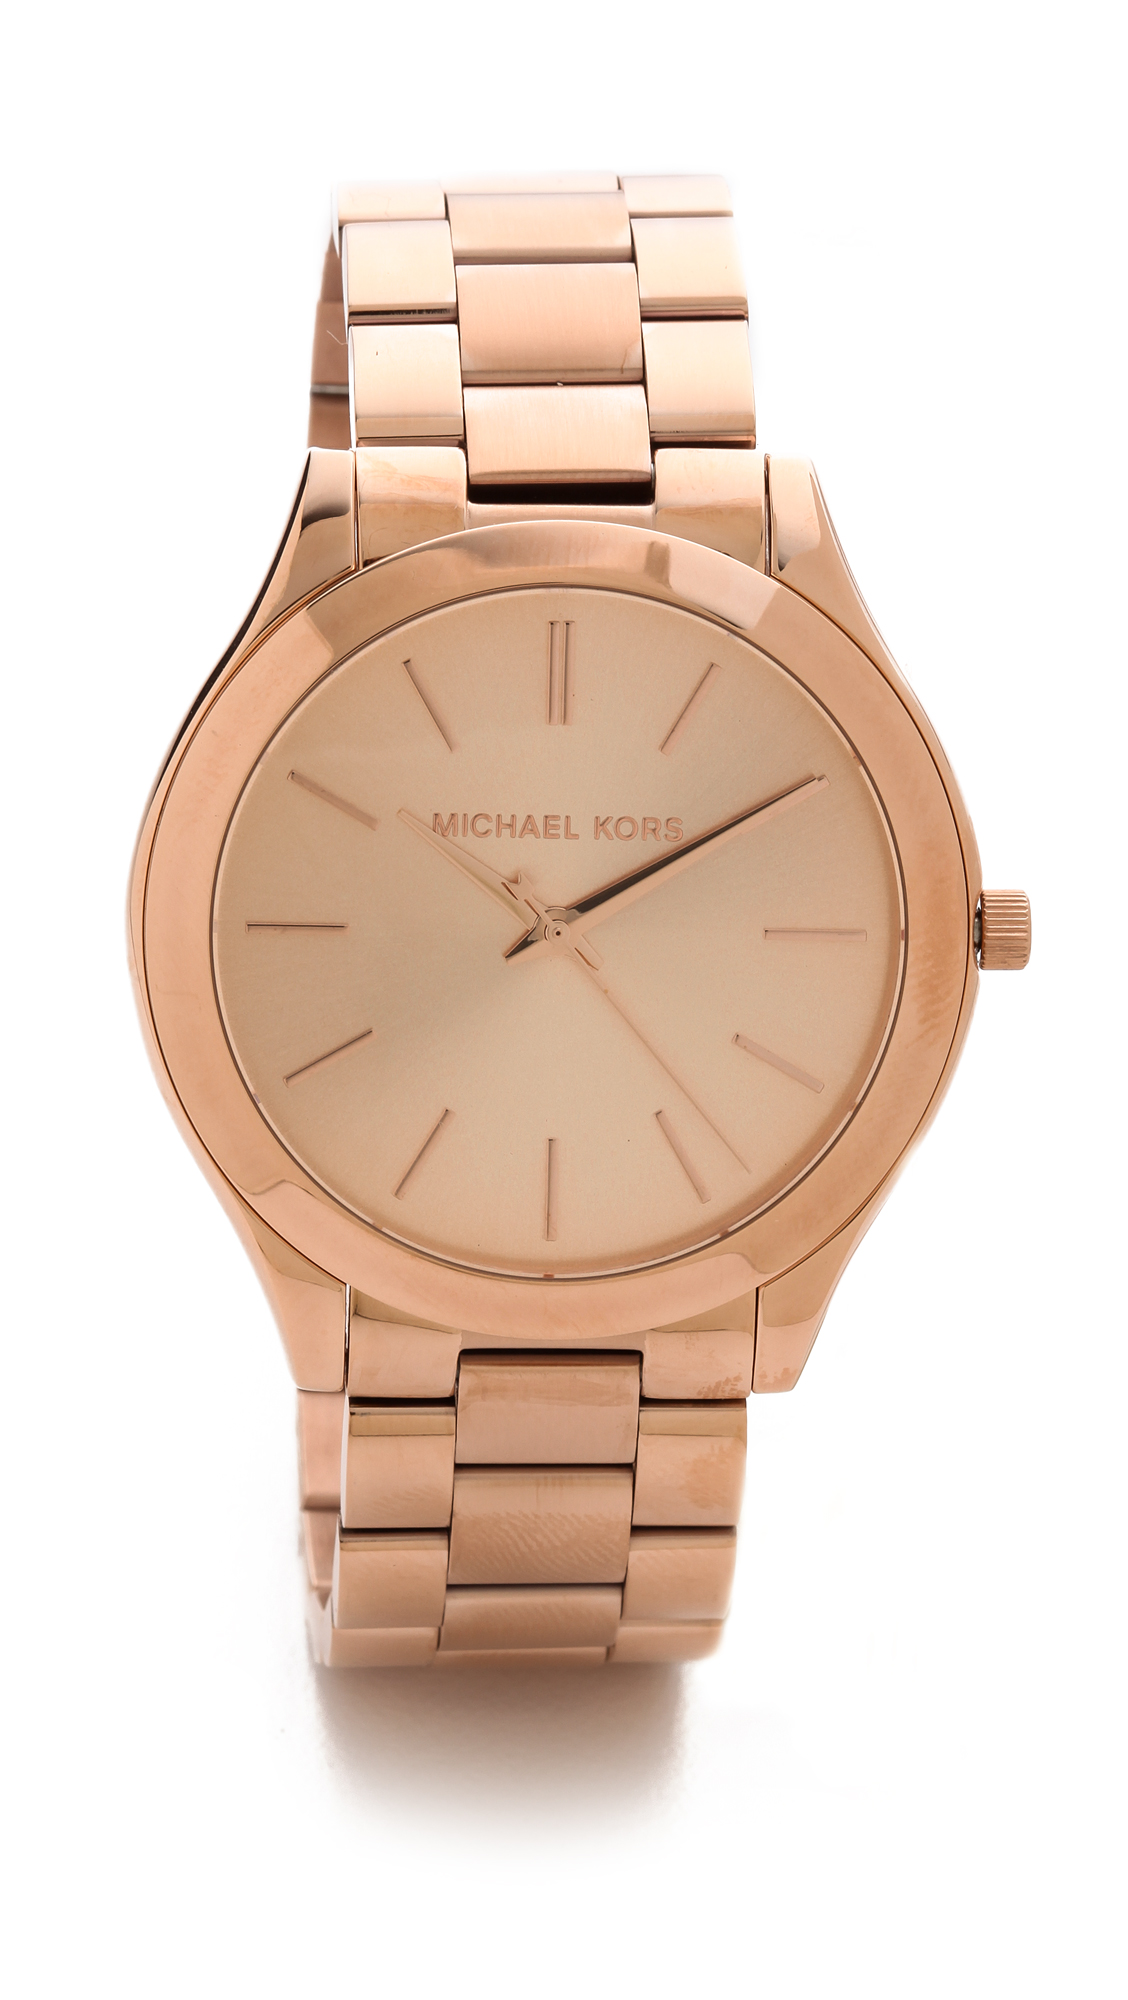 Michael kors slim runway watch rose gold in pink rose gold lyst for Watches gold